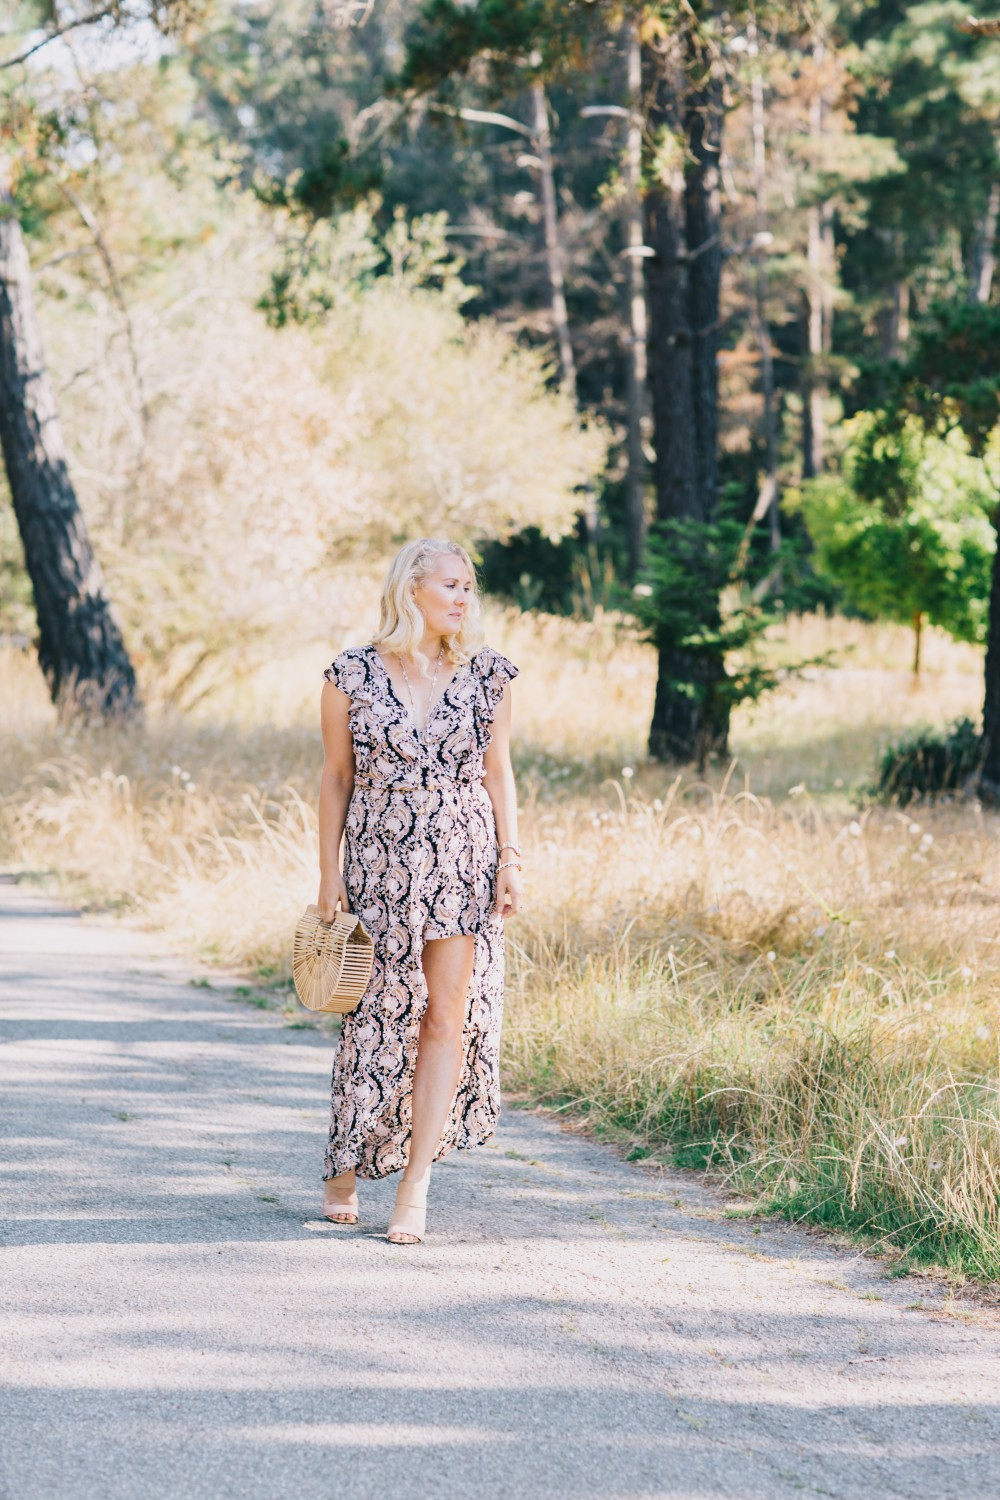 Maxi Romper-Summer Style-Outfit Inspiration-Bay Area Fashion Blogger-Have Need Want 6